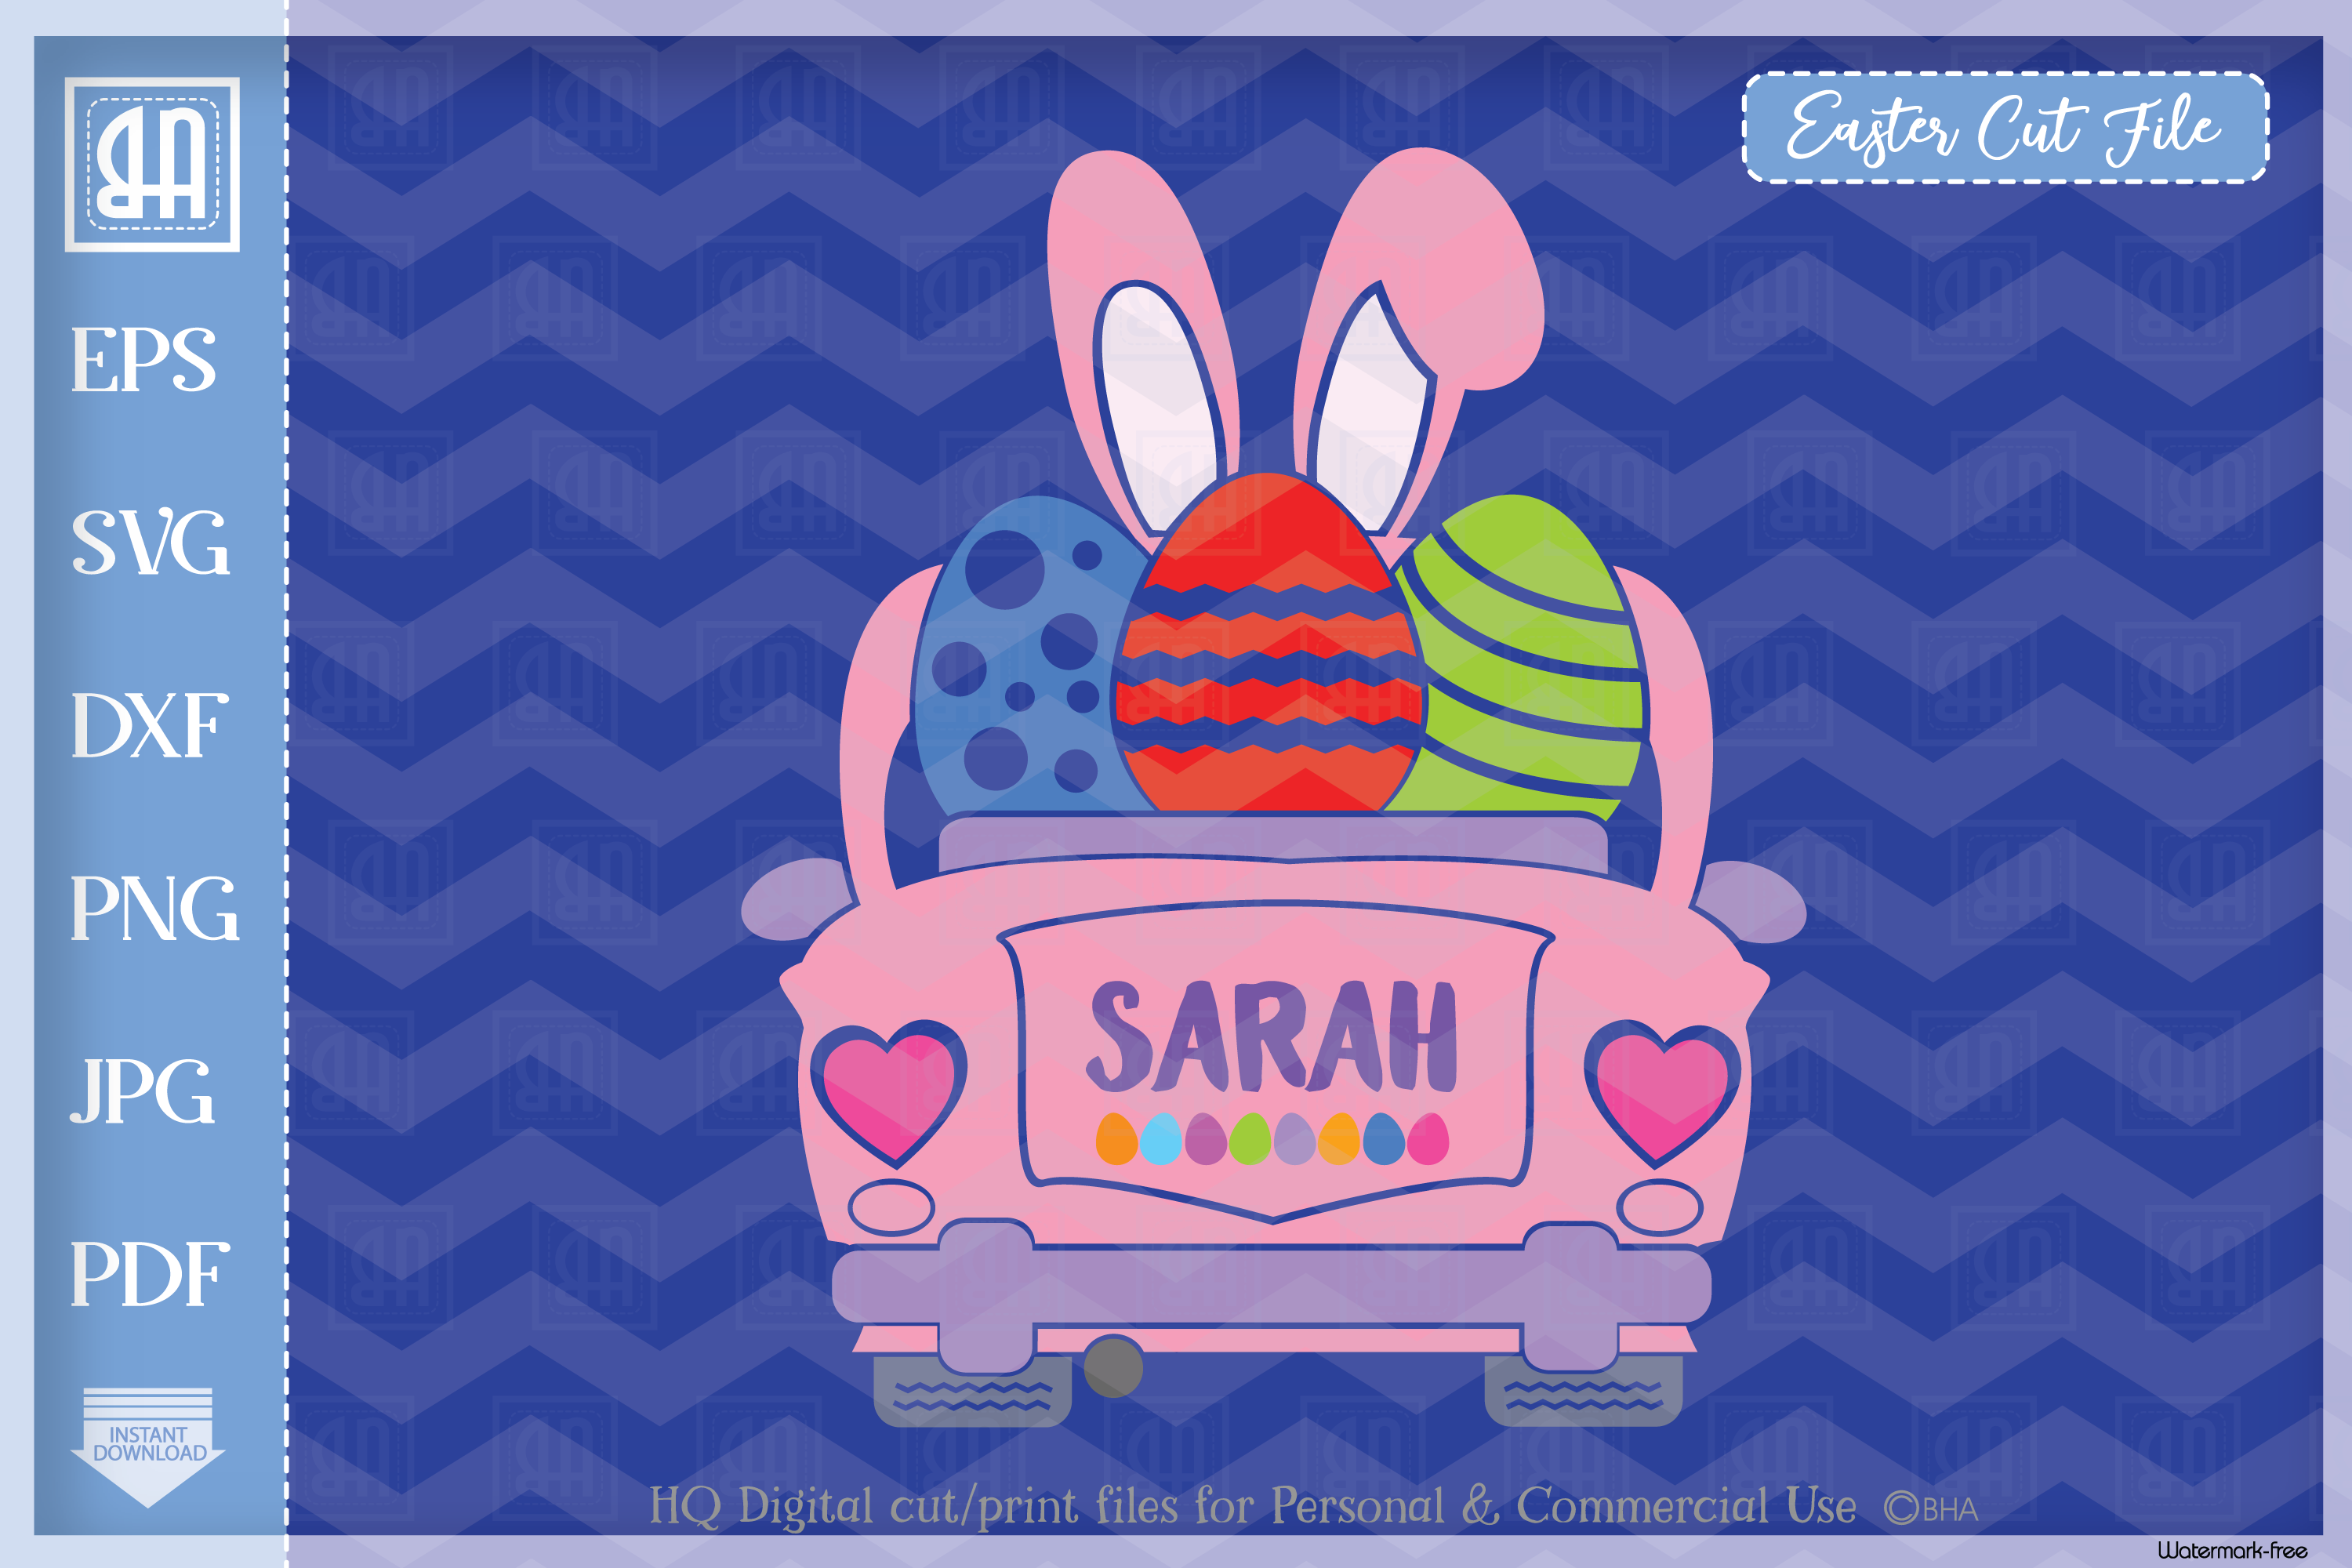 Download Free Easter Car Vintage Car Girls Graphic By Blueberry Hill Art for Cricut Explore, Silhouette and other cutting machines.